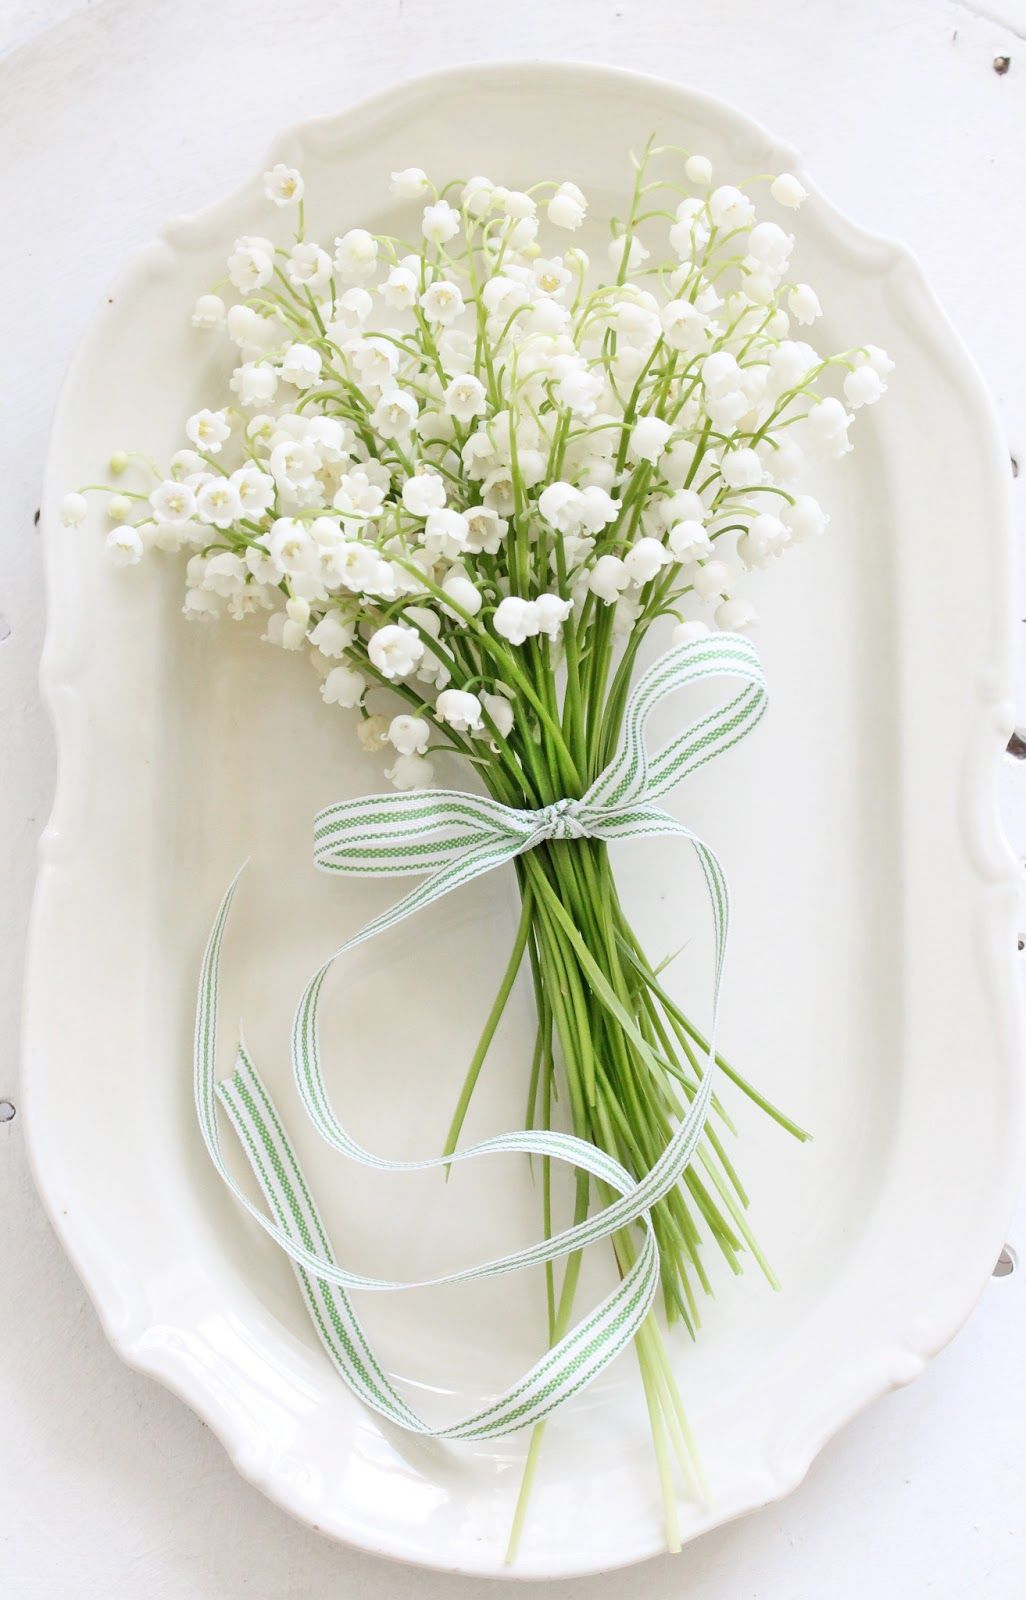 lovely lily of the valley bouquet: fragrant, simple a May flower